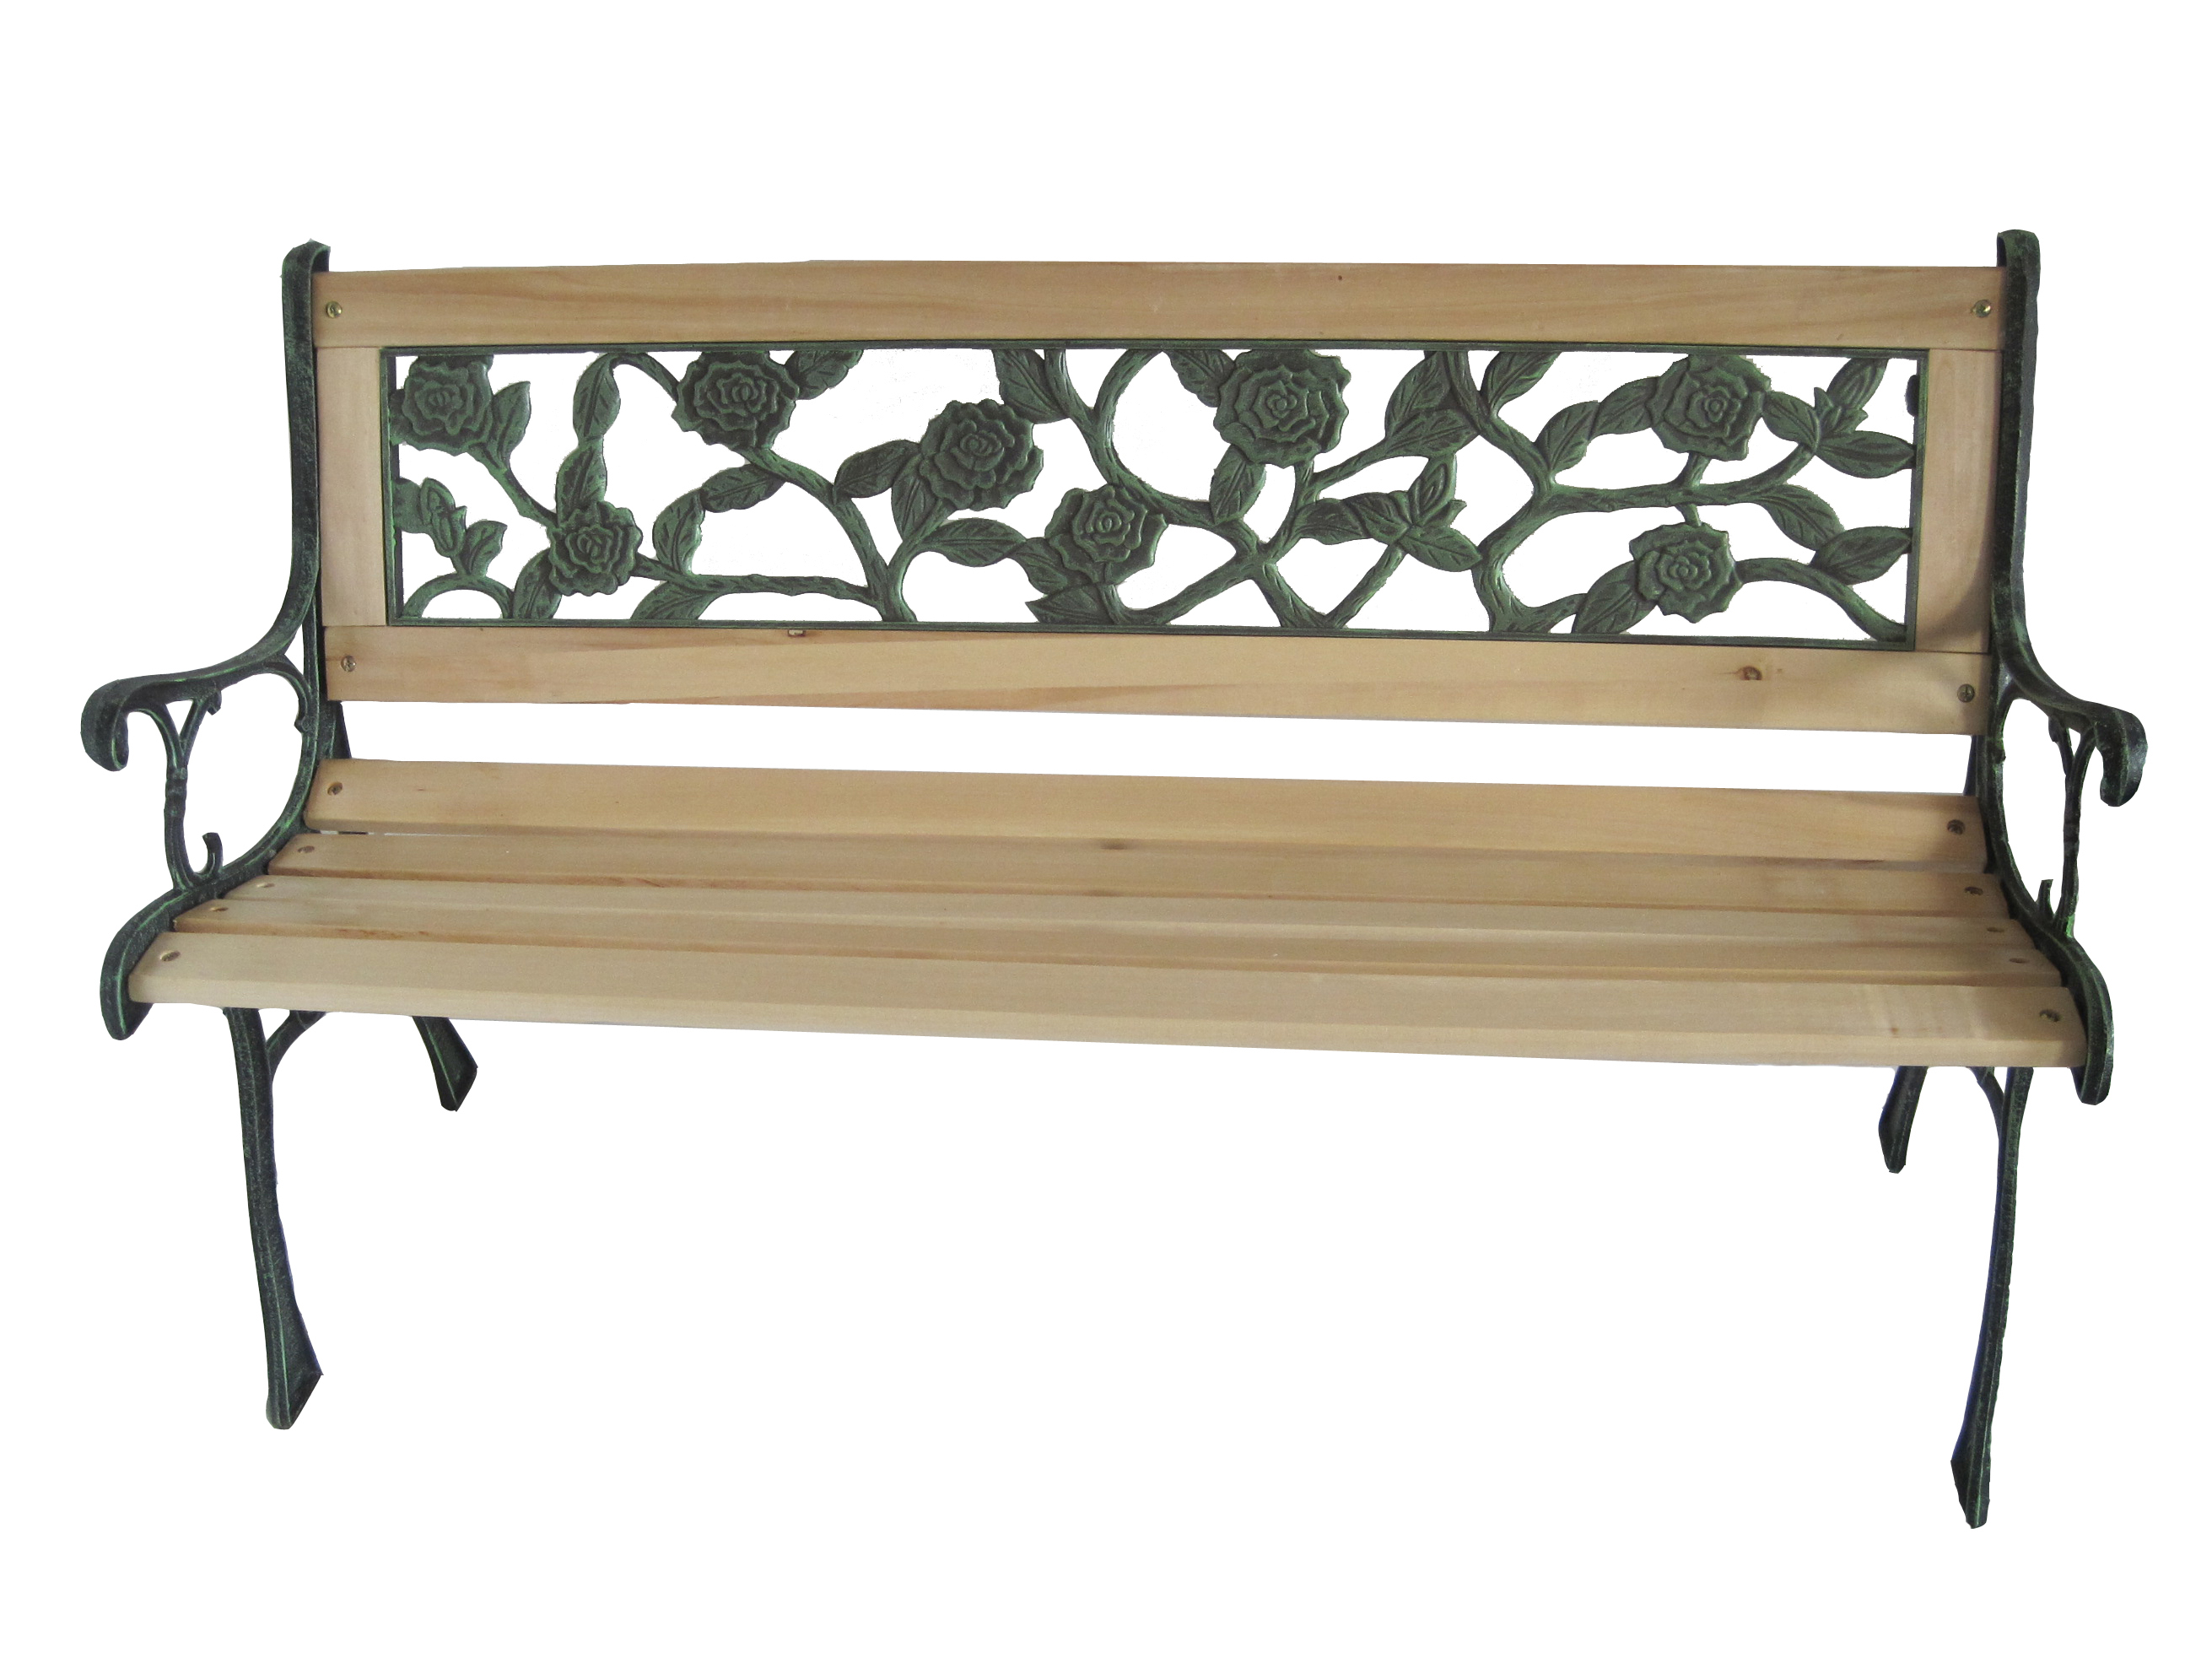 New 3 seater outdoor home wooden garden bench with cast iron legs seat furniture ebay Wrought iron outdoor bench